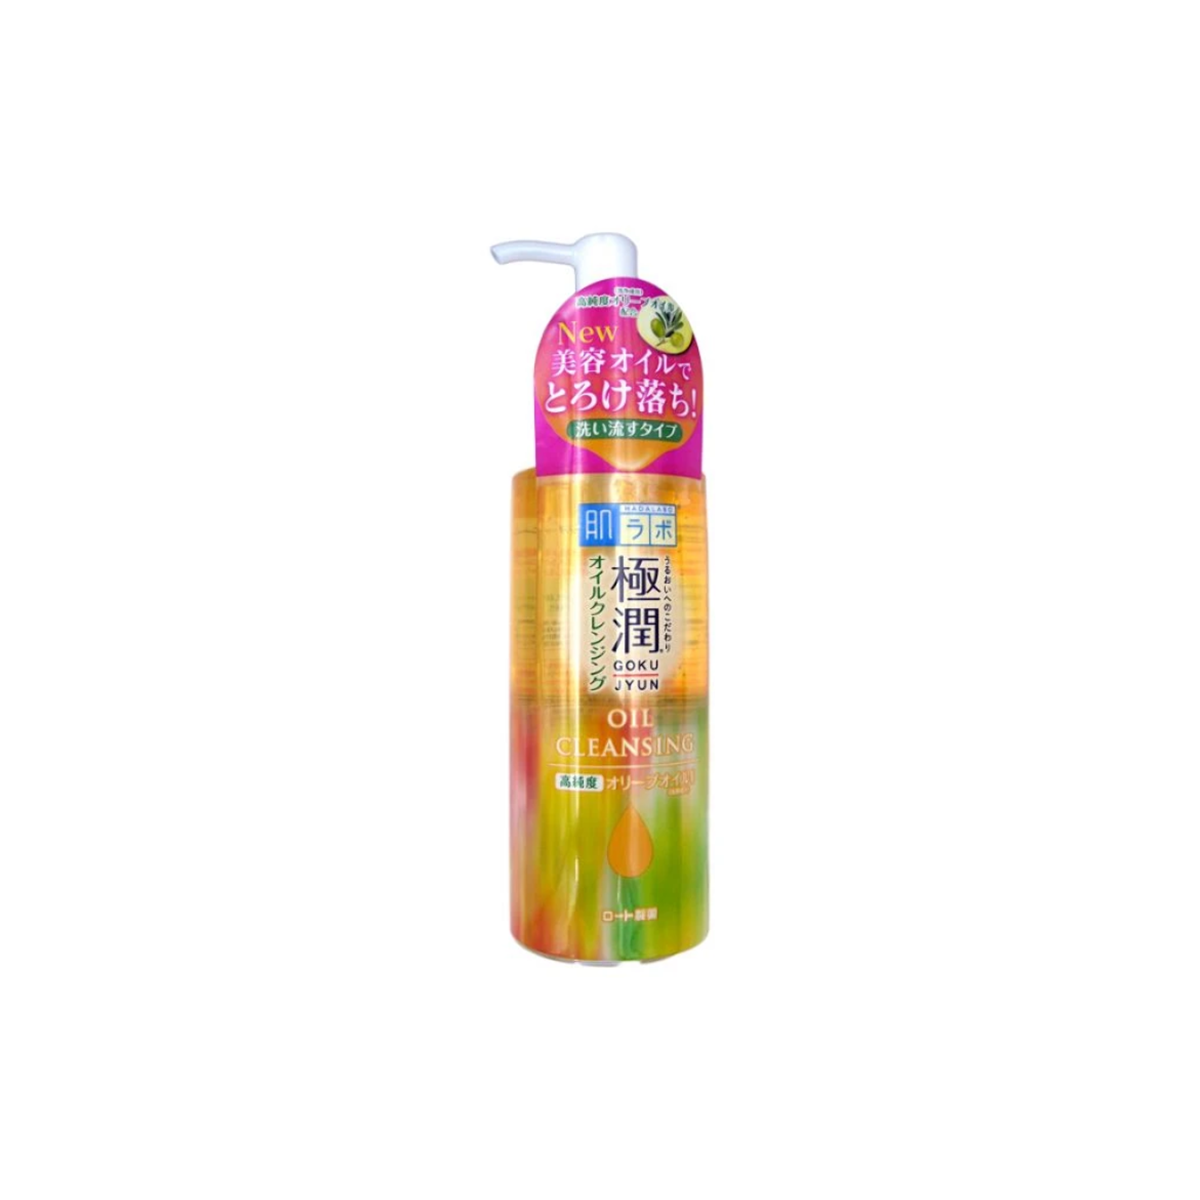 Buy Hada Labo Gokujyun Oil Cleansing 200ml [Ship from SG / 100% Authentic] Singapore